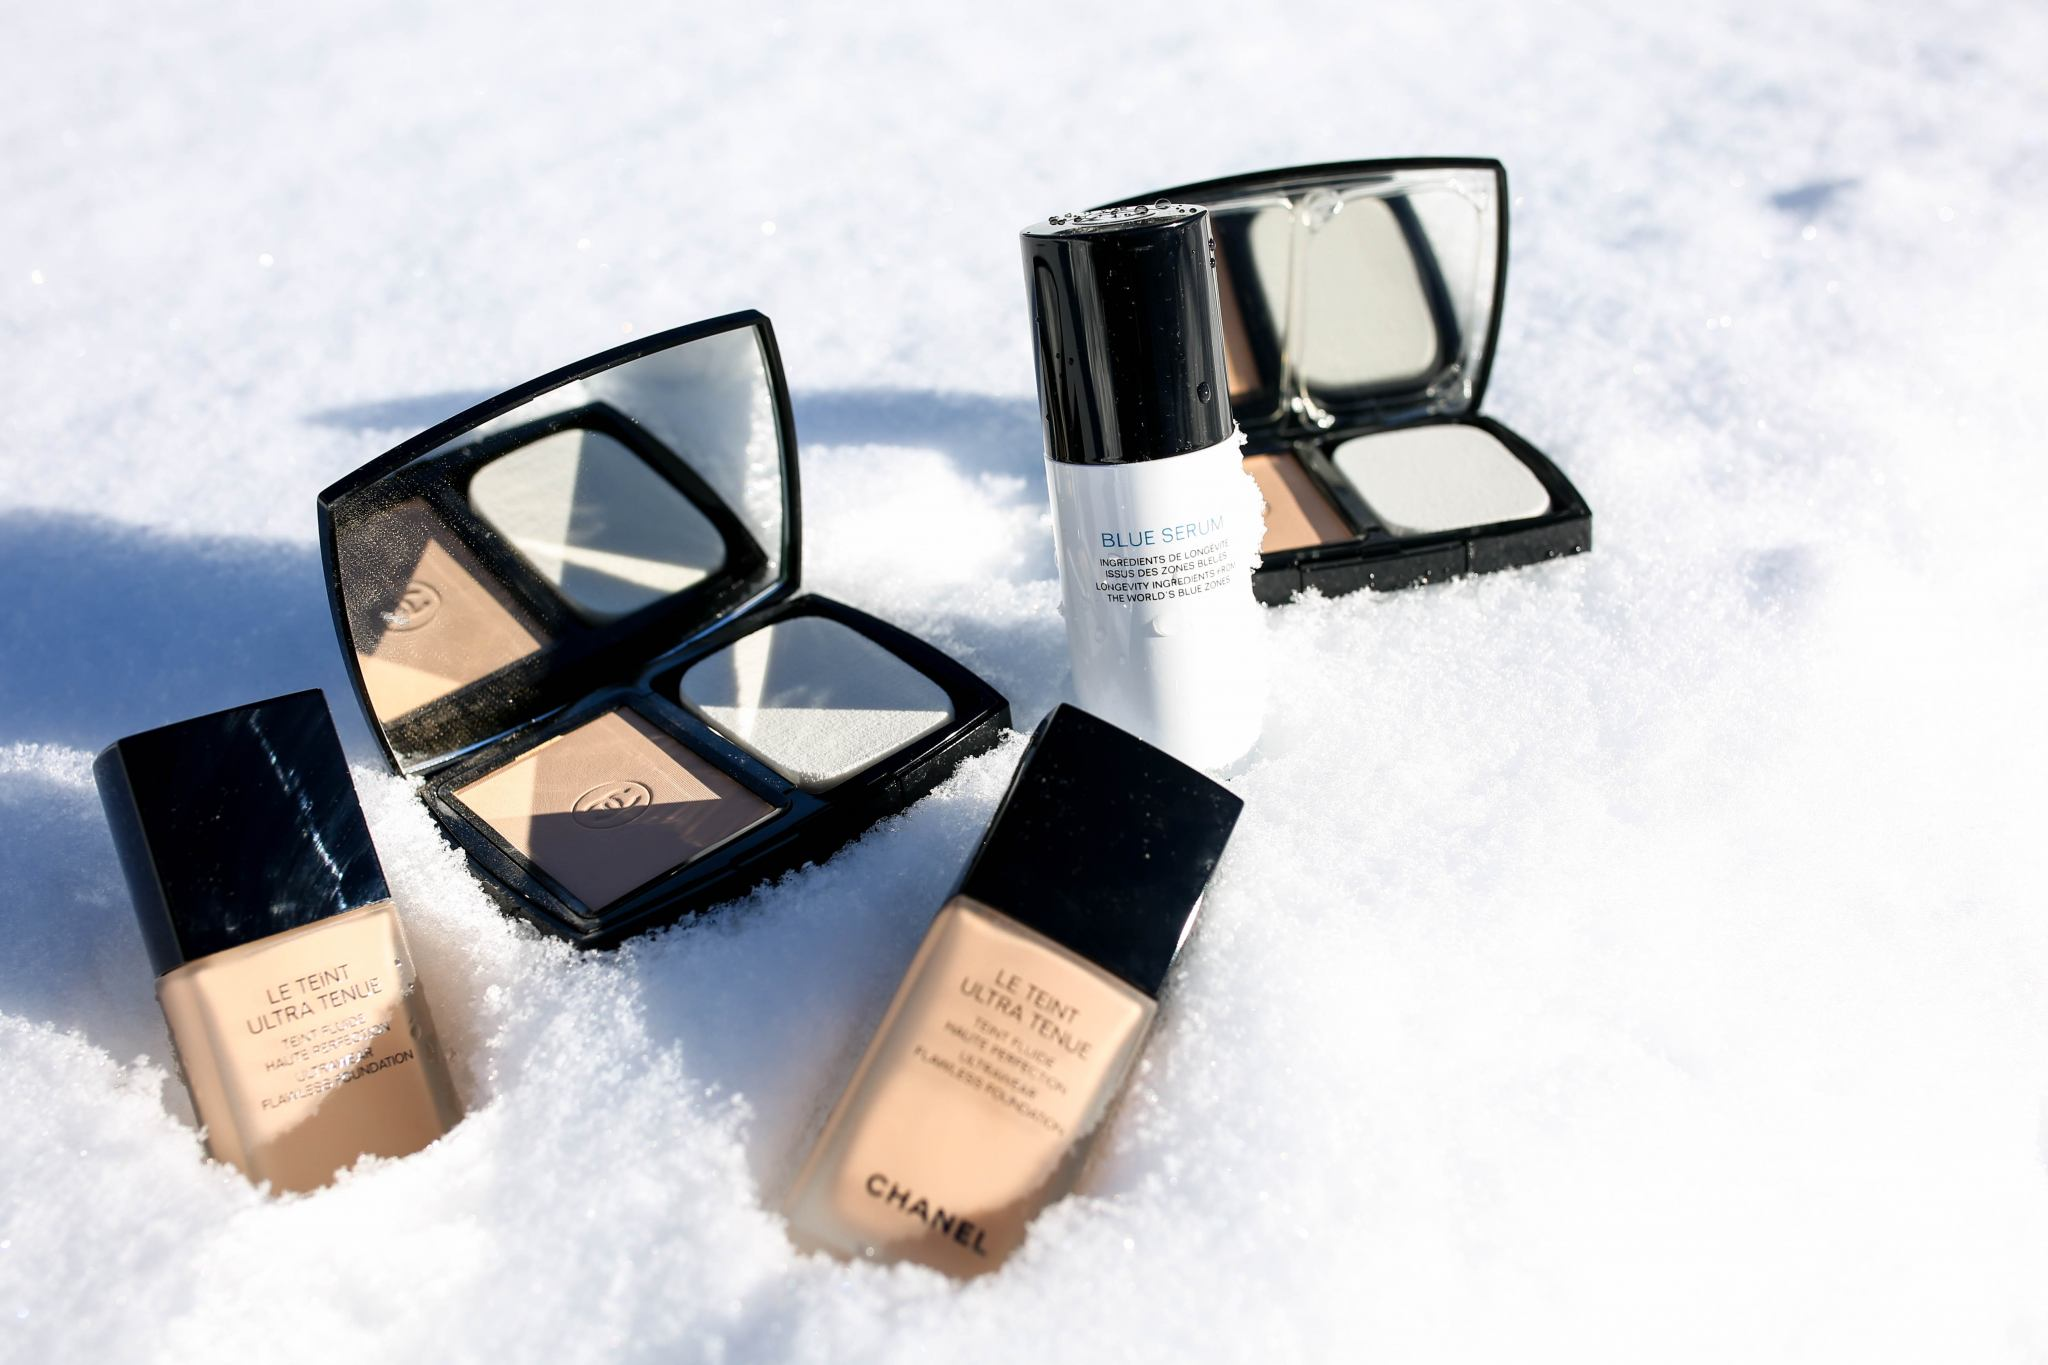 Chanel Le Teint Ultra Tenue Foundation And Blue Serum